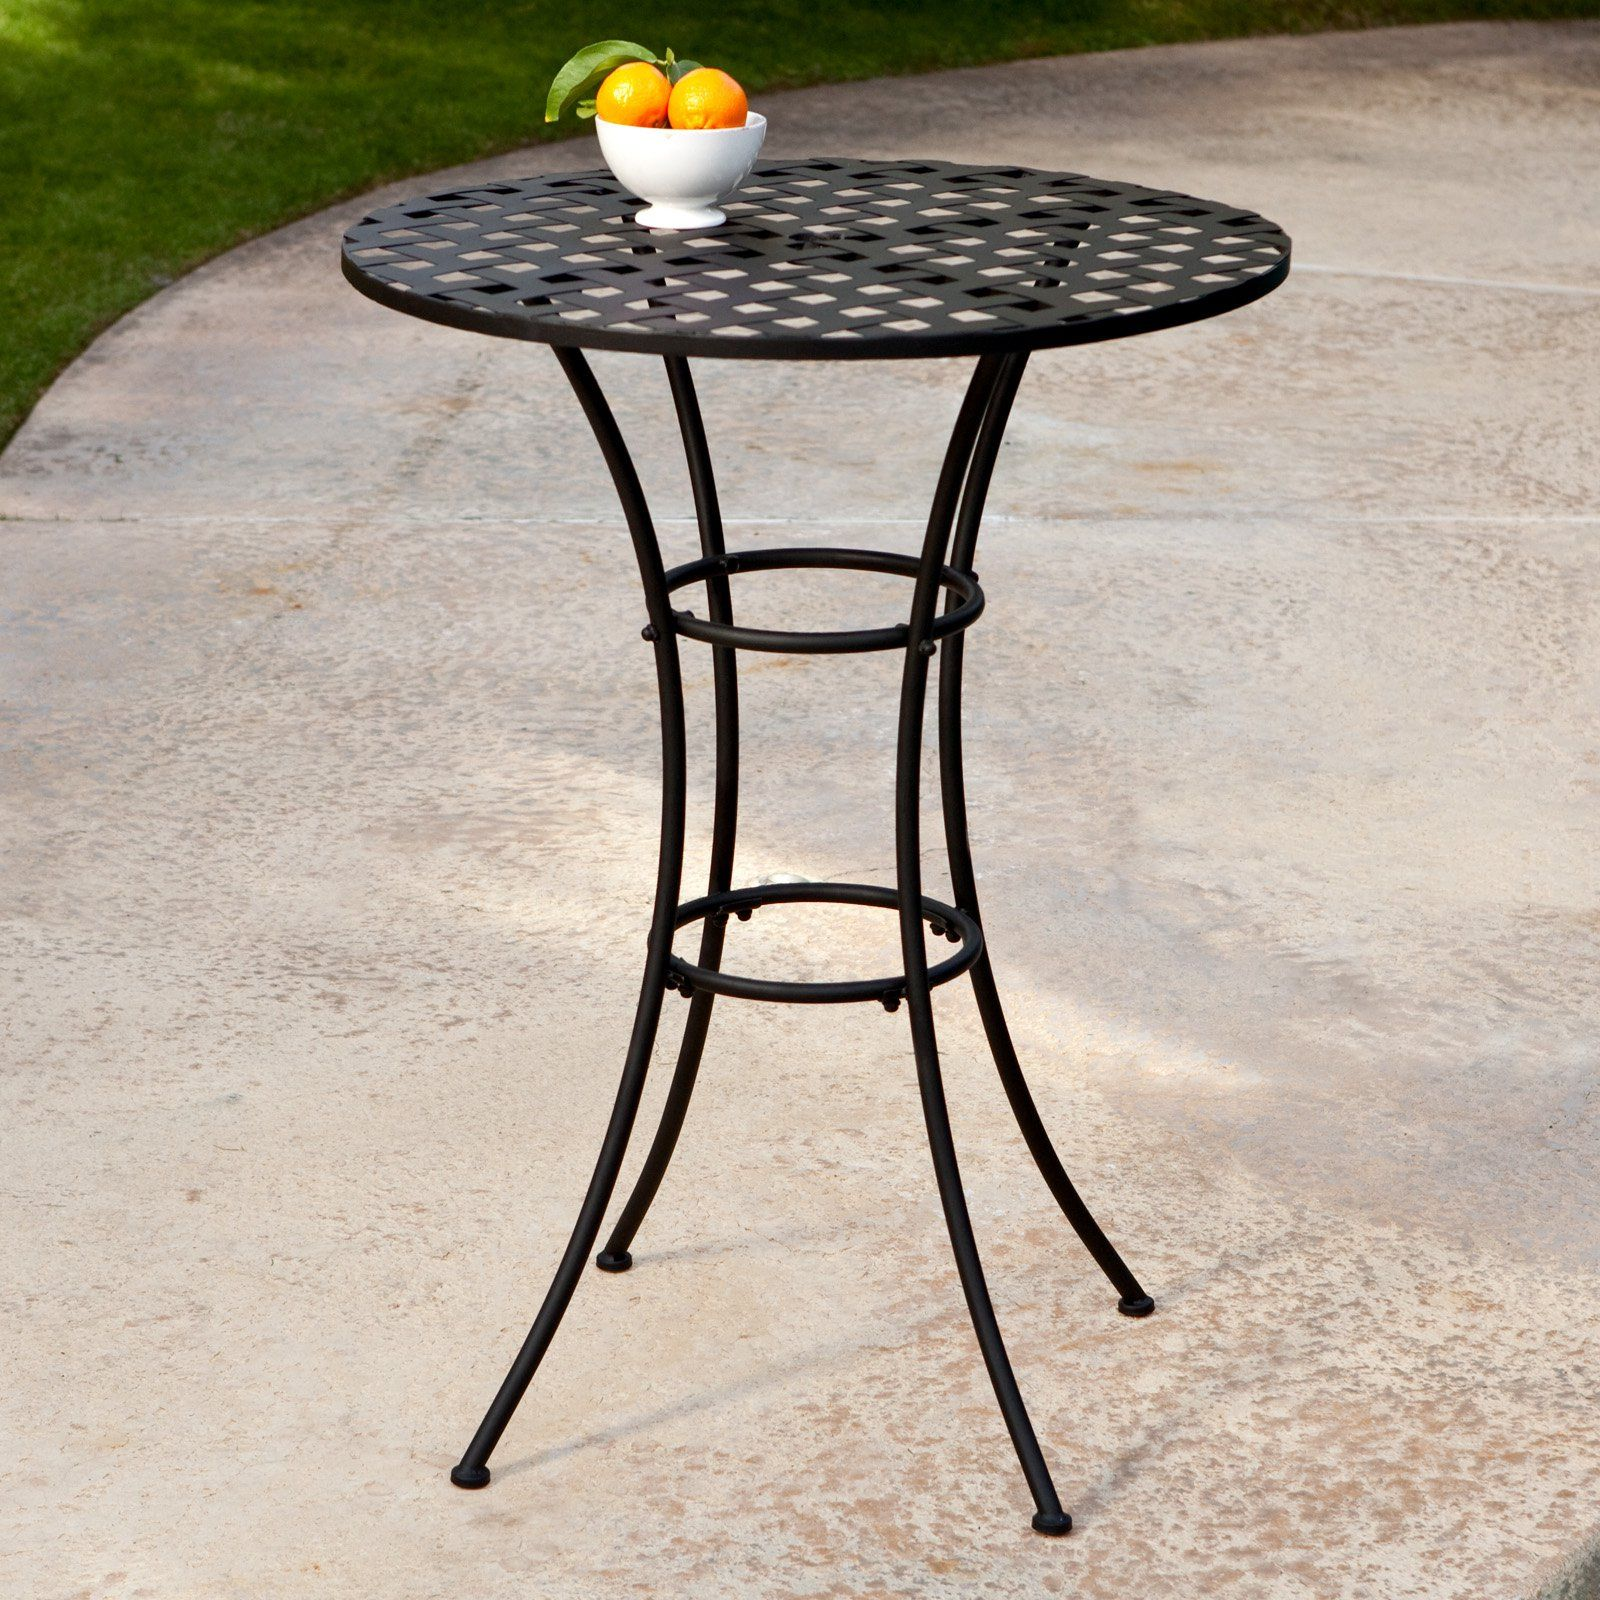 Belham Living Capri Wrought Iron Bar Height Bistro Table By